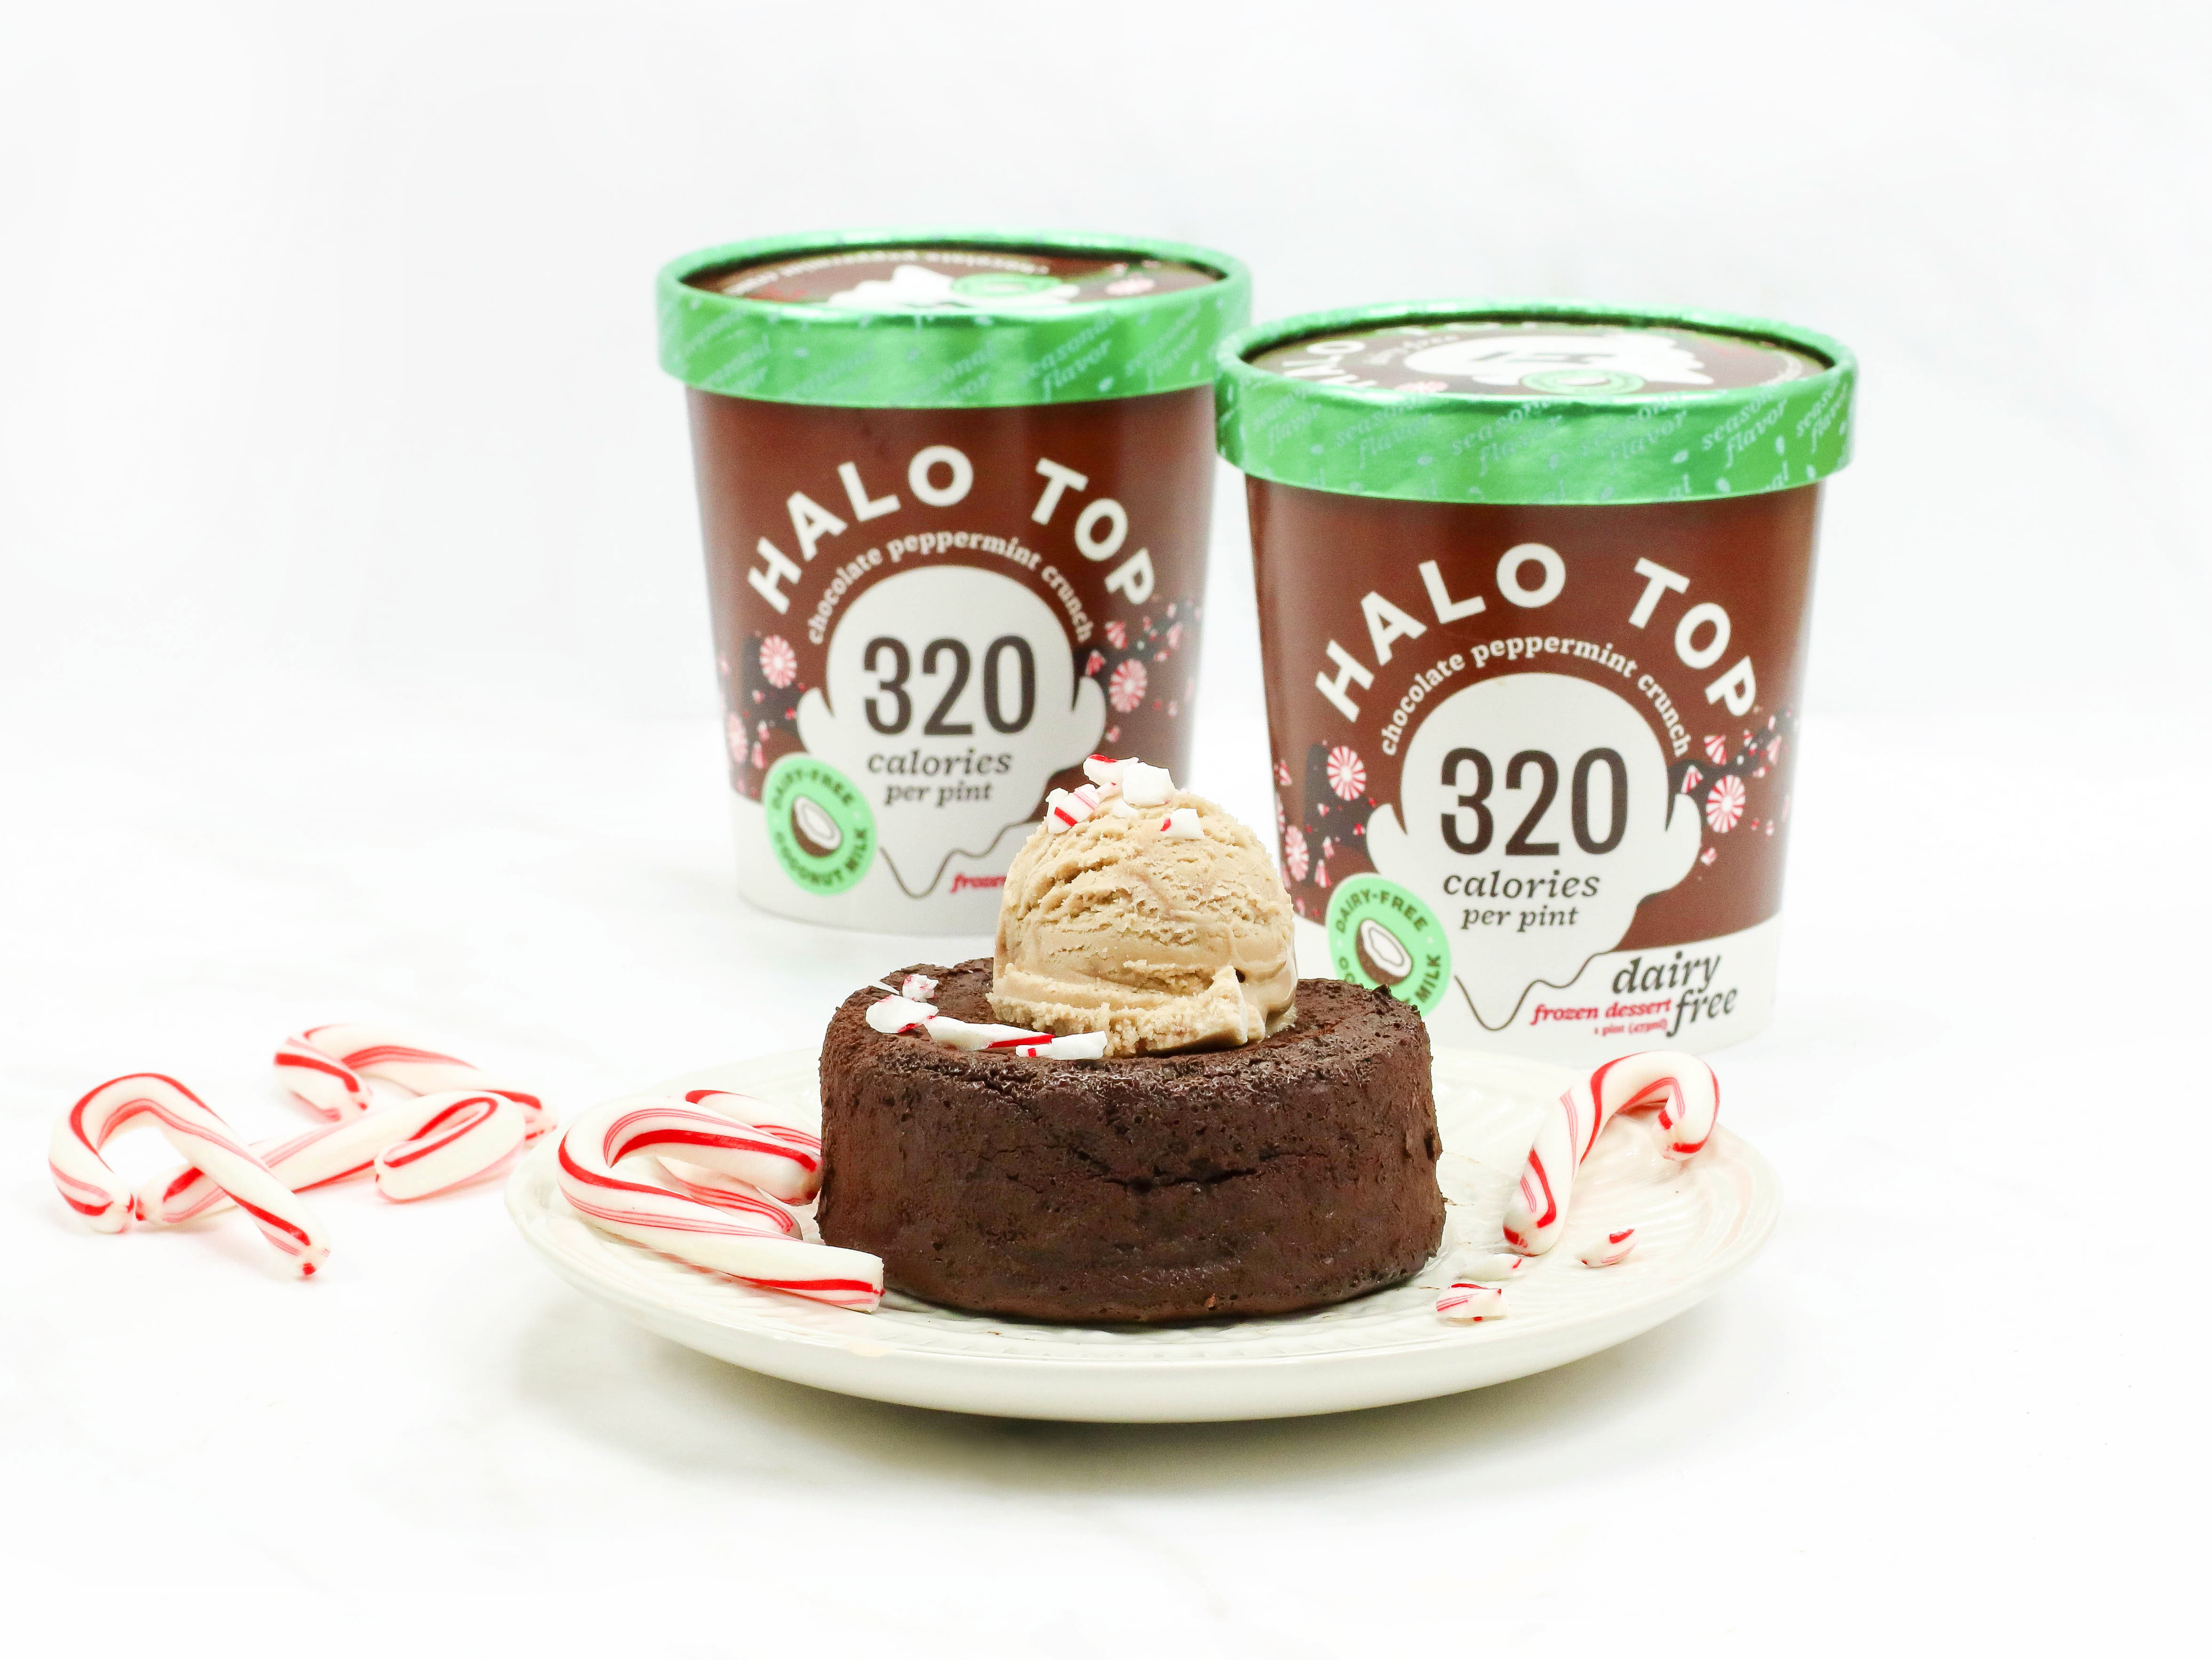 Molten Lava Chocolate Peppermint Crunch Cakes with two pints of Dairy-free Chocolate Peppermint Crunch